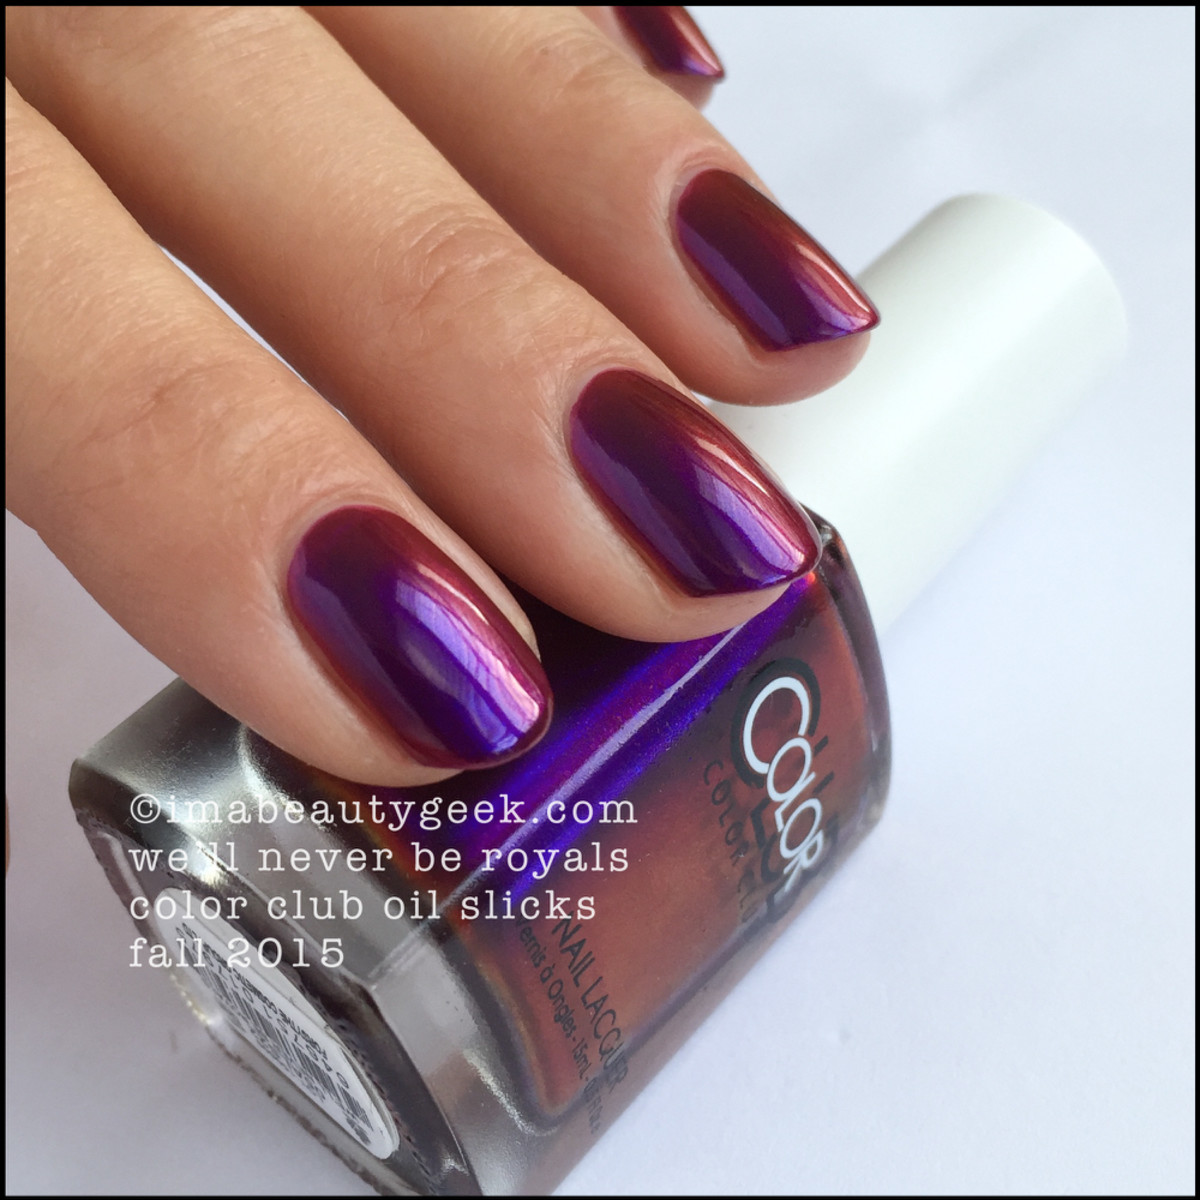 Color Club Oil Slick Collection_Color Club Well Never Be Royals_3